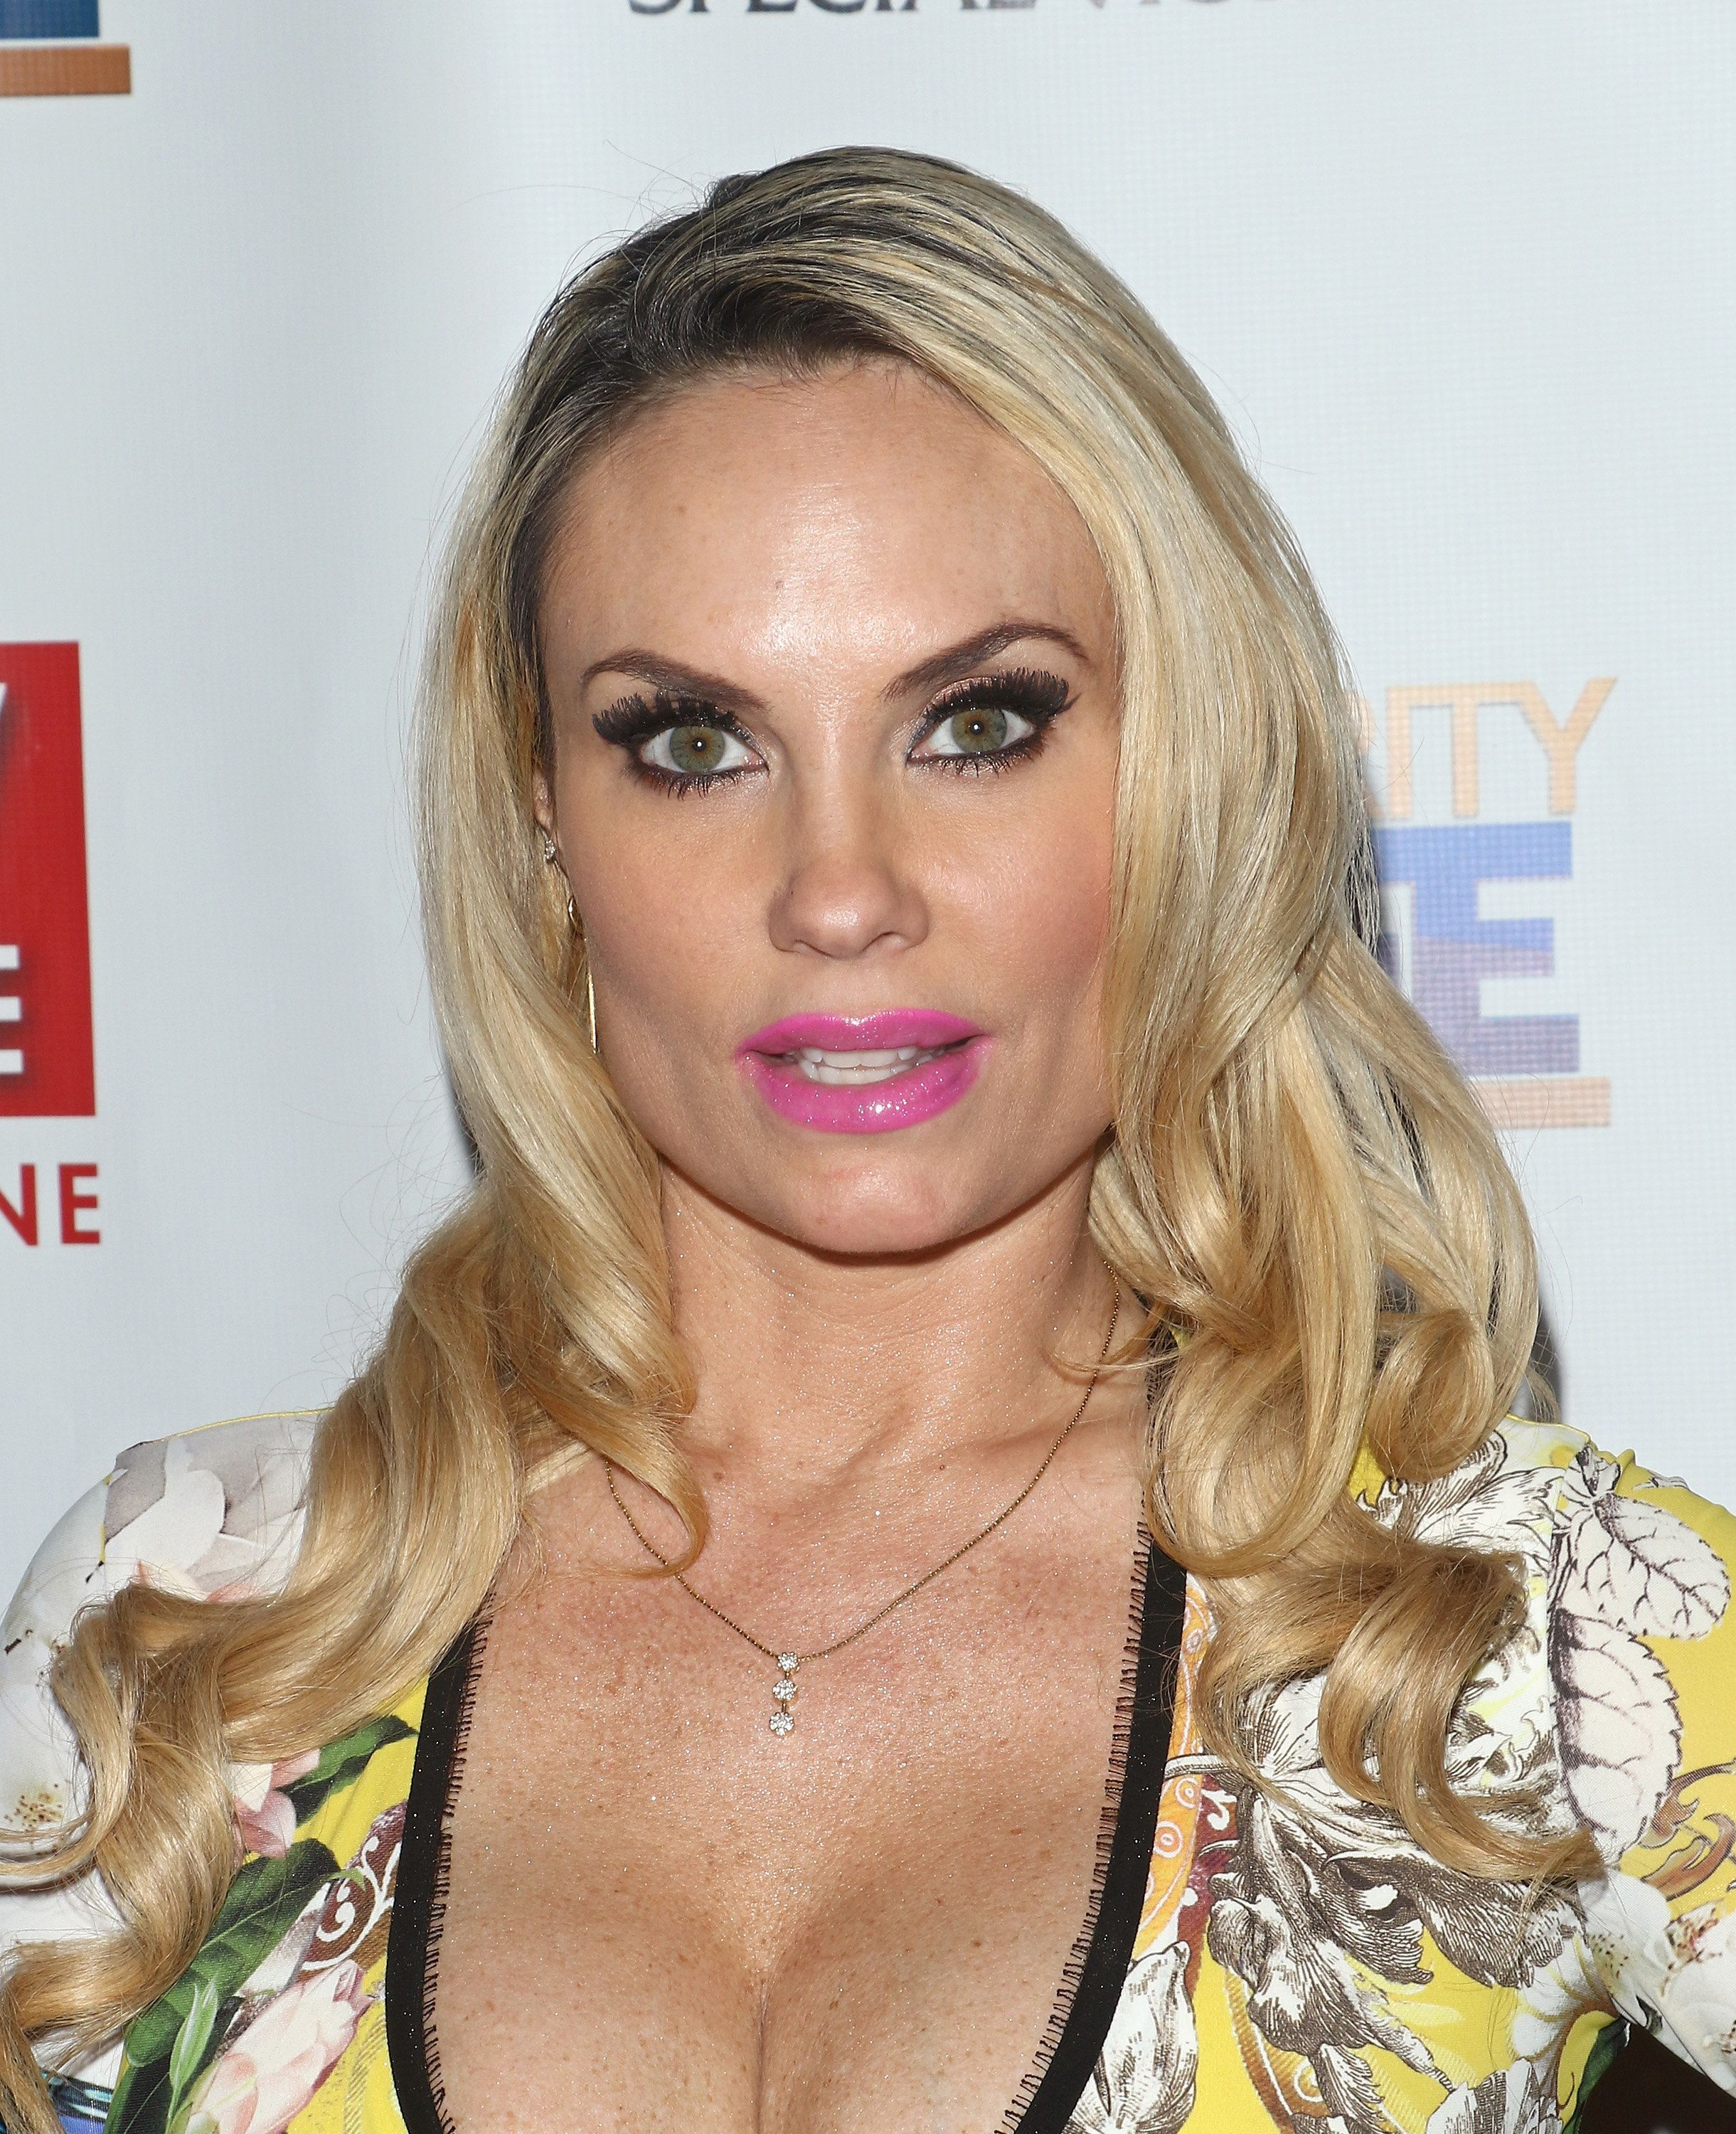 NEW YORK, NY - JANUARY 11:  Actress Coco Austin attends the TV Guide celebrates Mariska Hargitay at Gansevoort Park Avenue on January 11, 2017 in New York City.  (Photo by Jim Spellman/WireImage)